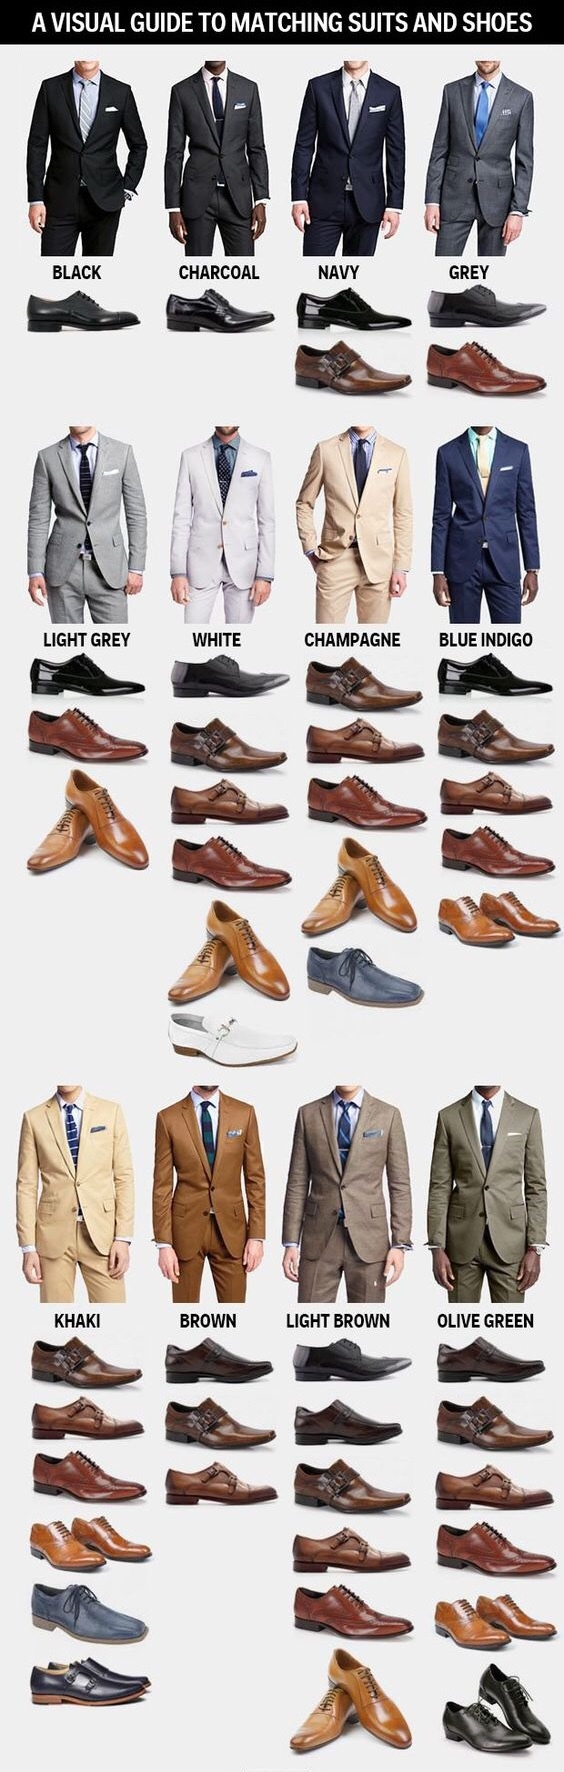 matching suits and shoes